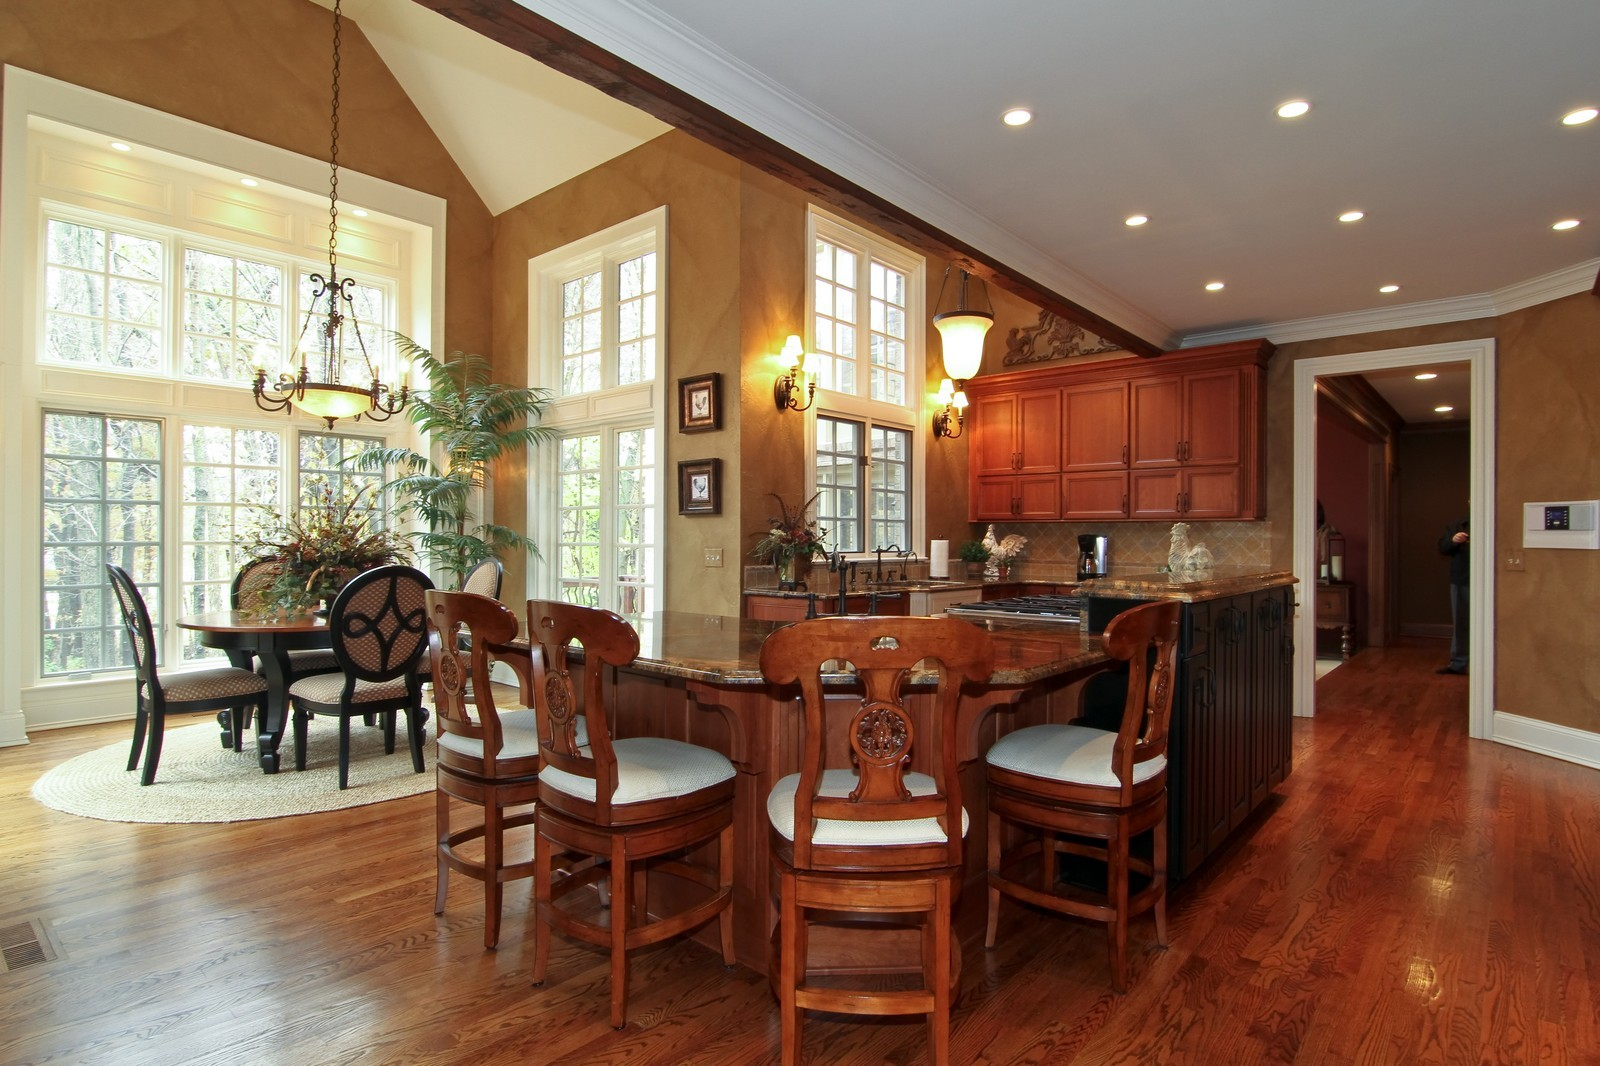 Real Estate Photography - 810 Fox Glen Drive, St. Charles, IL, 60174 - Kitchen / Breakfast Room